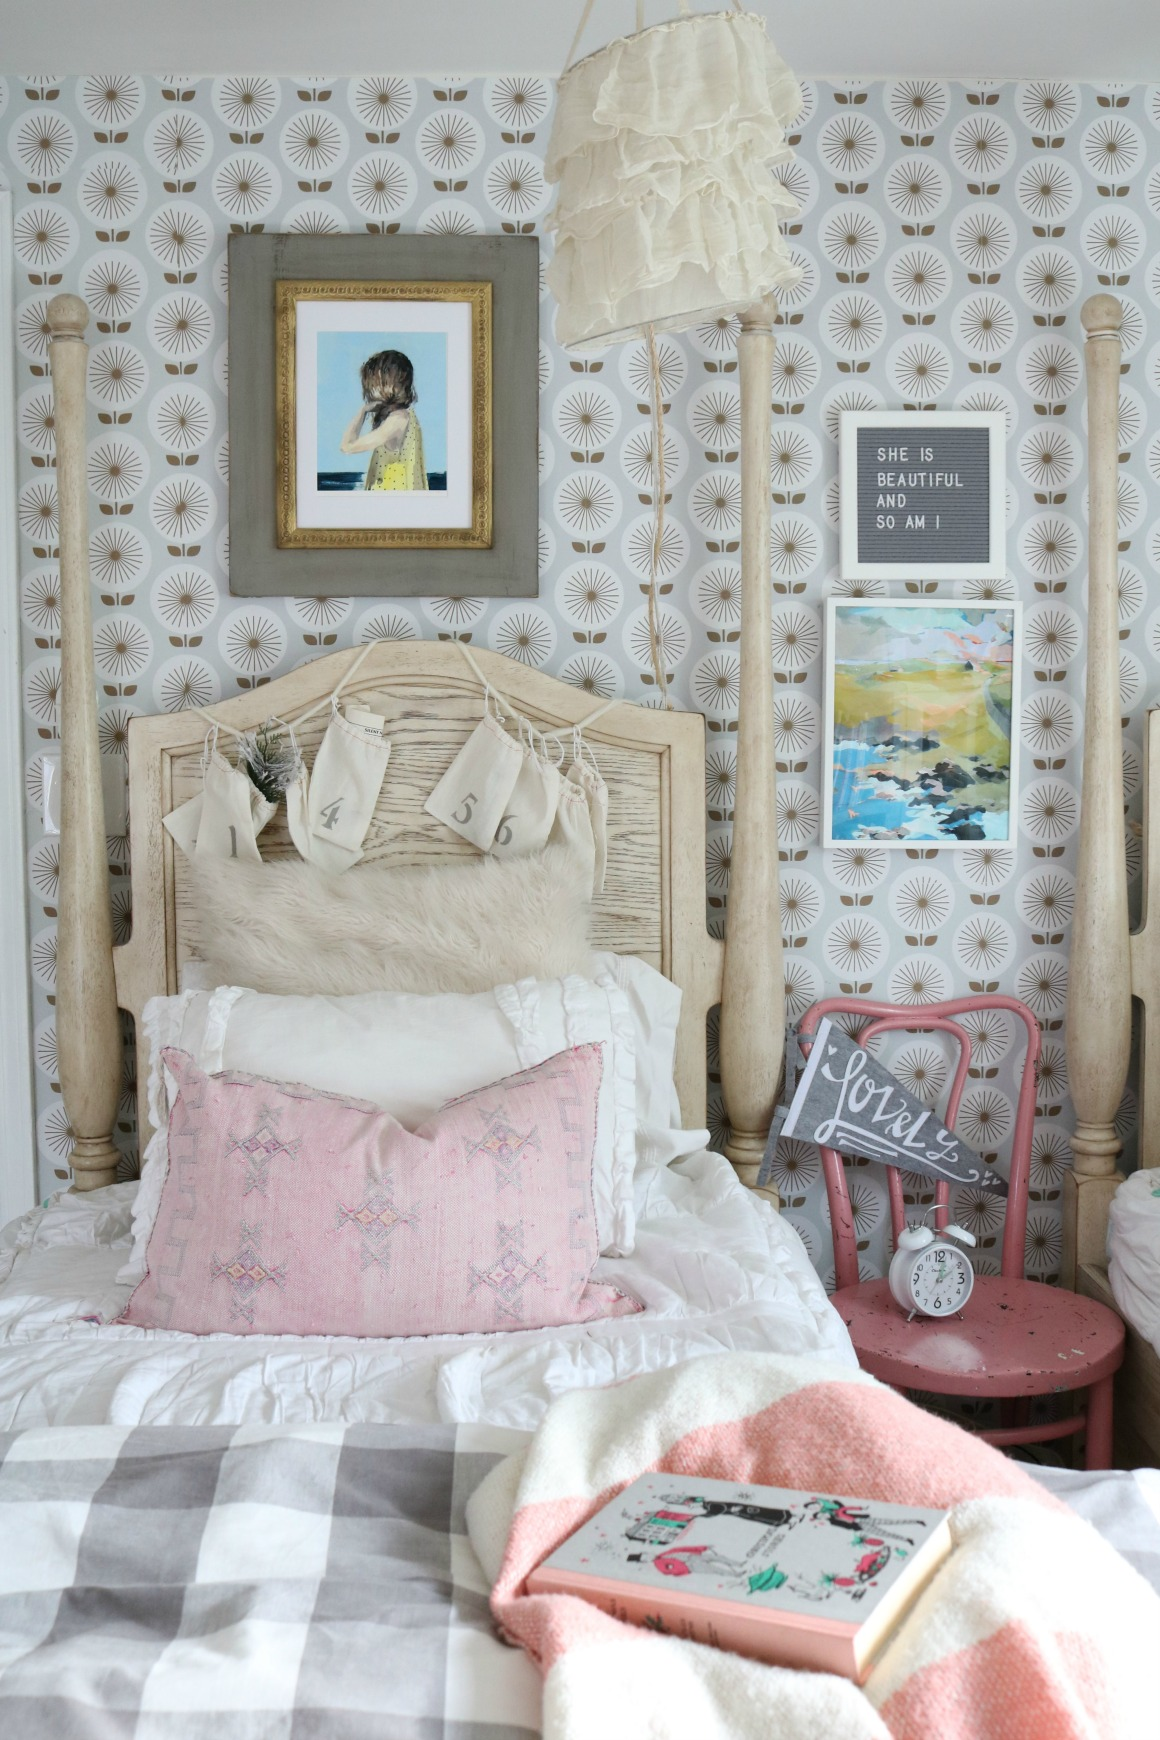 Christmas ideas in a small space upstairs tour nesting - Girls shared bedroom ideas ...